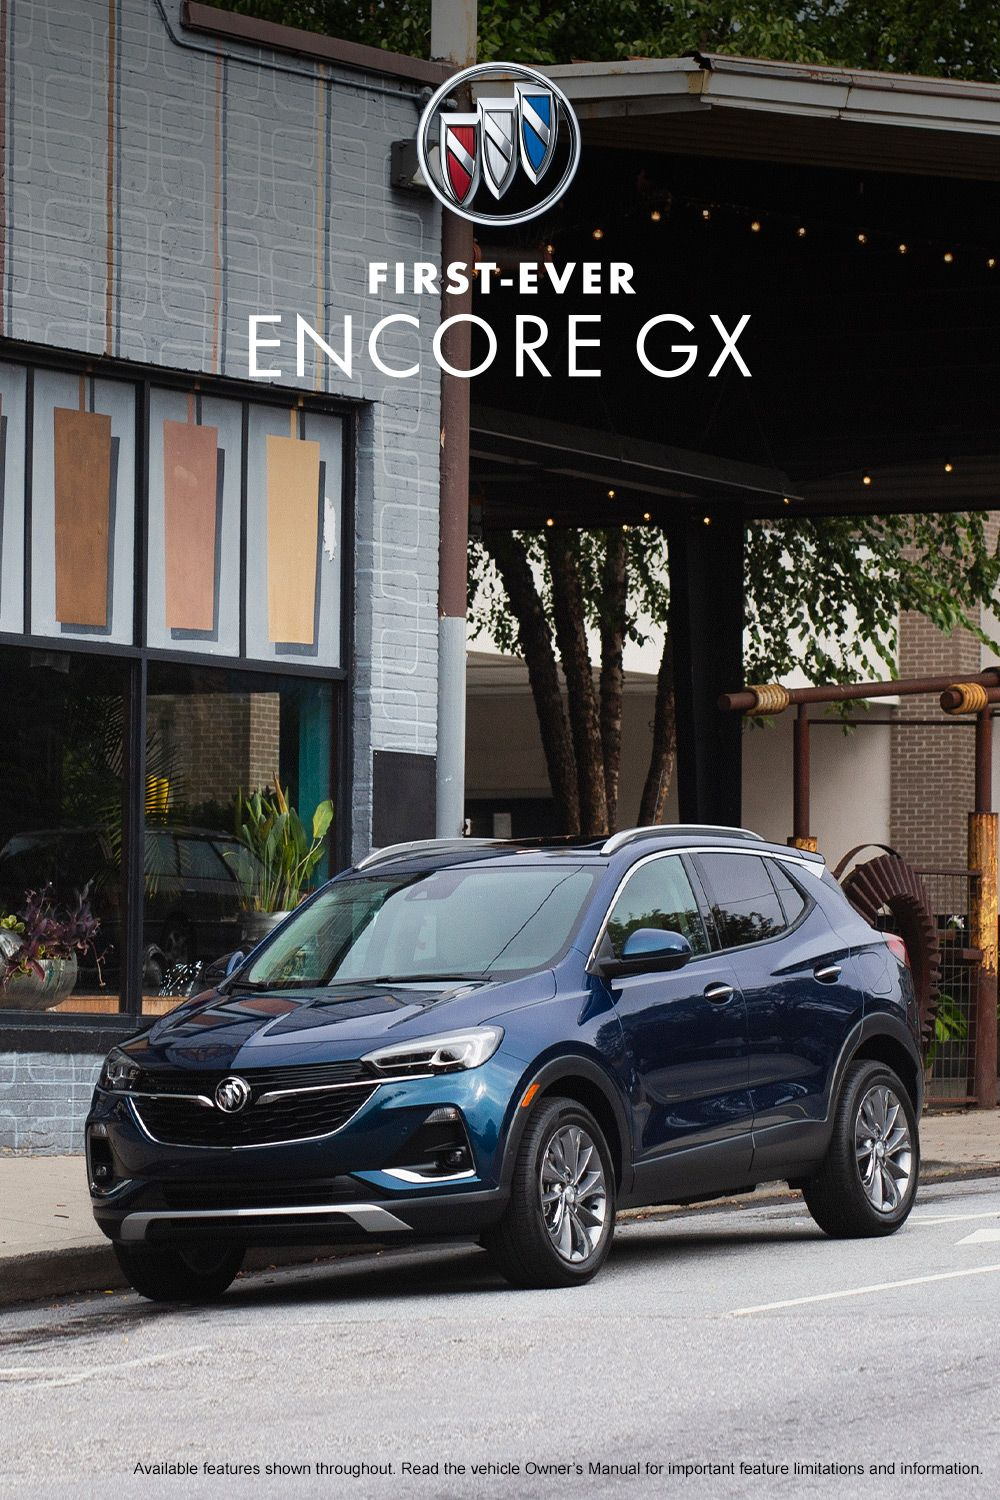 Get The Know The First Ever Encore Gx Small Suv Buick Encore Buick